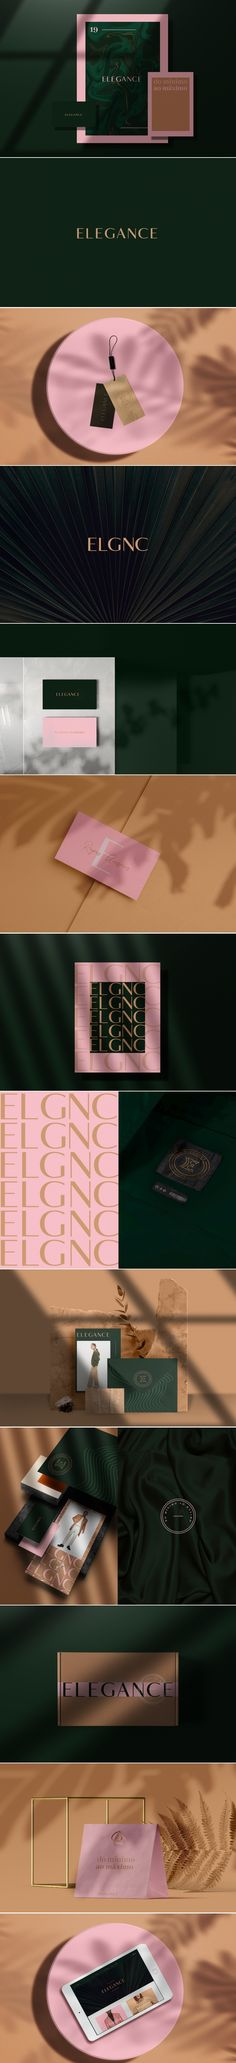 Elegance fashion brand identity by Elebrand Design Studio | Fivestar Branding Agency – Design and Branding Agency & Curated Inspiration Gallery  #fashion #branding #fashionbranding #brandingdesign #brandinginspiration #brandingagency #brand #branddesign #brandinspiration #brandidentity #identity #identitydesign #logodesign #printdesign #colordesign #packaging